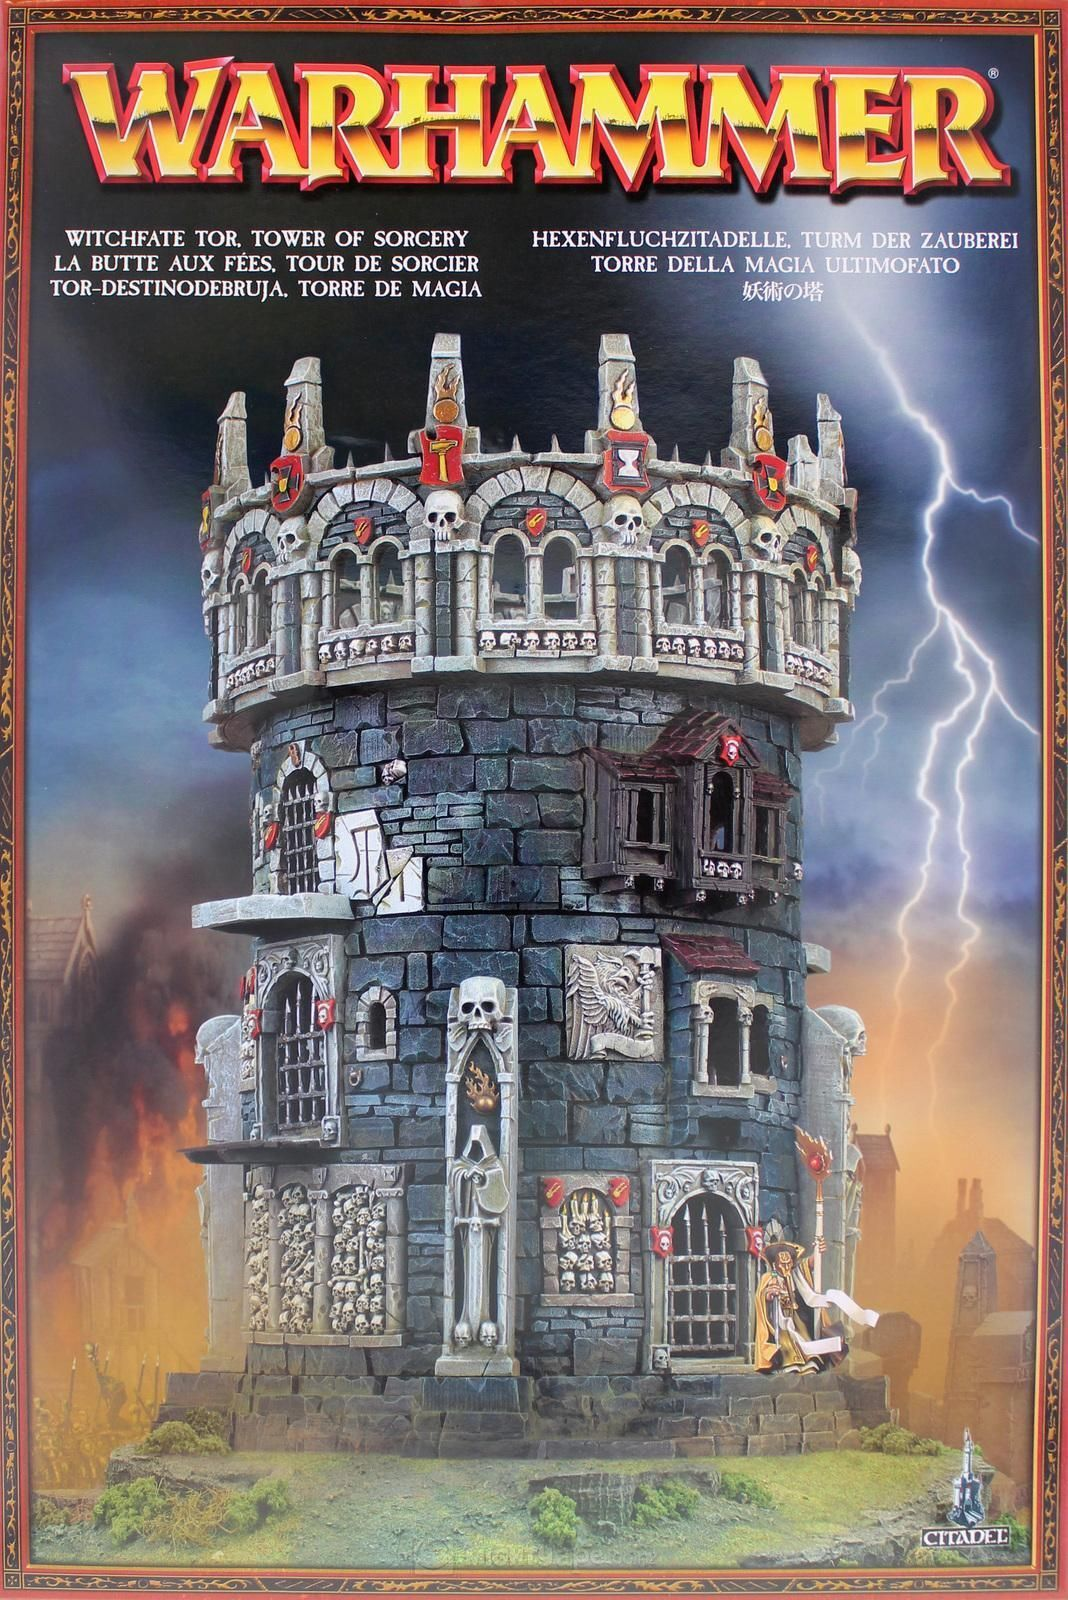 WARHAMMER WITCHFATE TOR, TOWER OF SORCERY FACTORY SEALED GAMES WORKSHOP WORKSHOP WORKSHOP OOP 250481